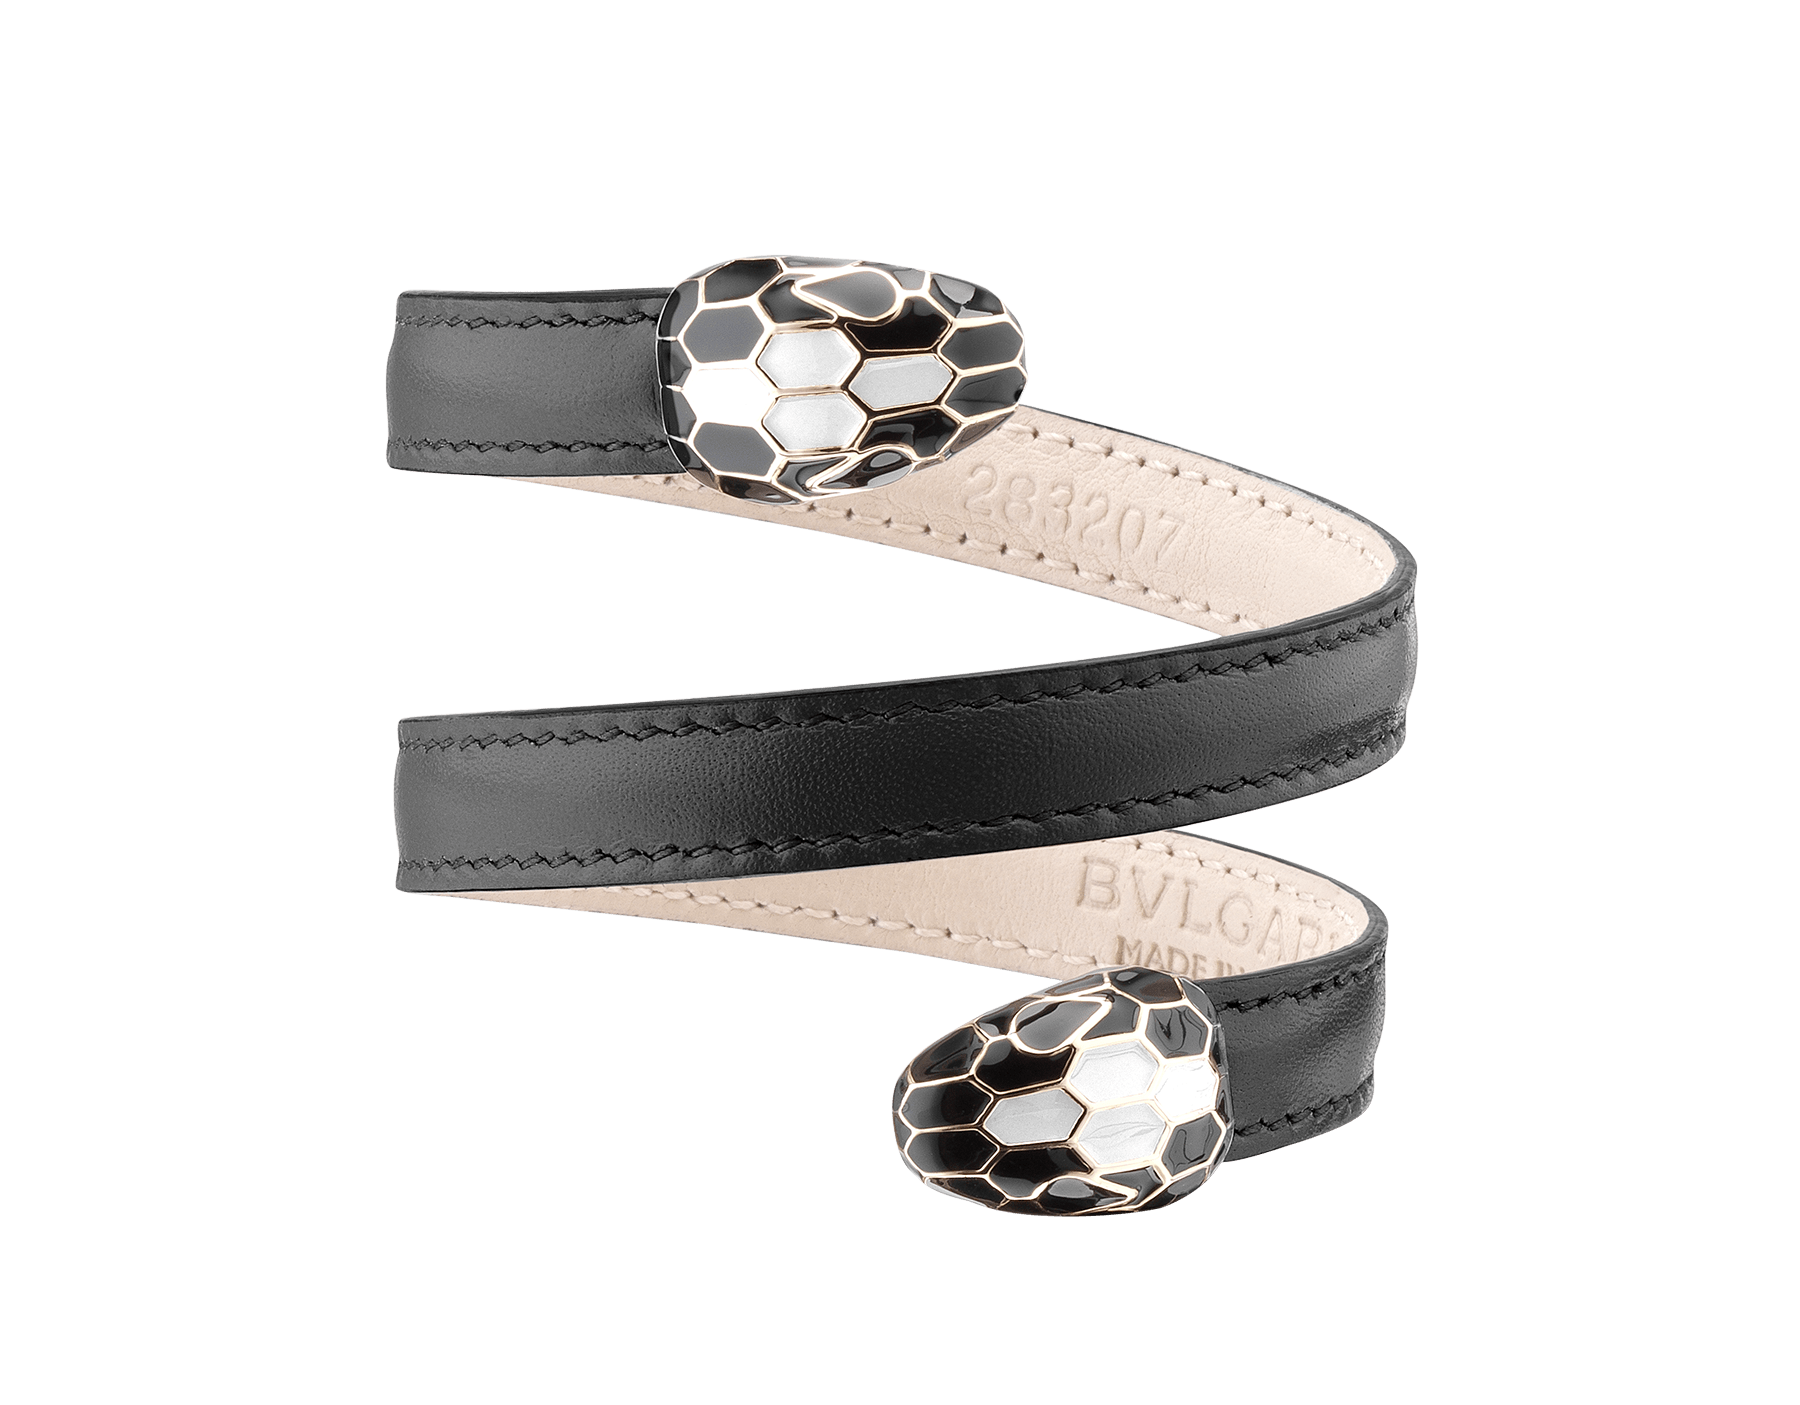 Multi-coiled rigid bracelet in black calf leather with brass light gold plated hardware. Double tempting Serpenti head finished in black and tone on tone enamel. 283203 image 1